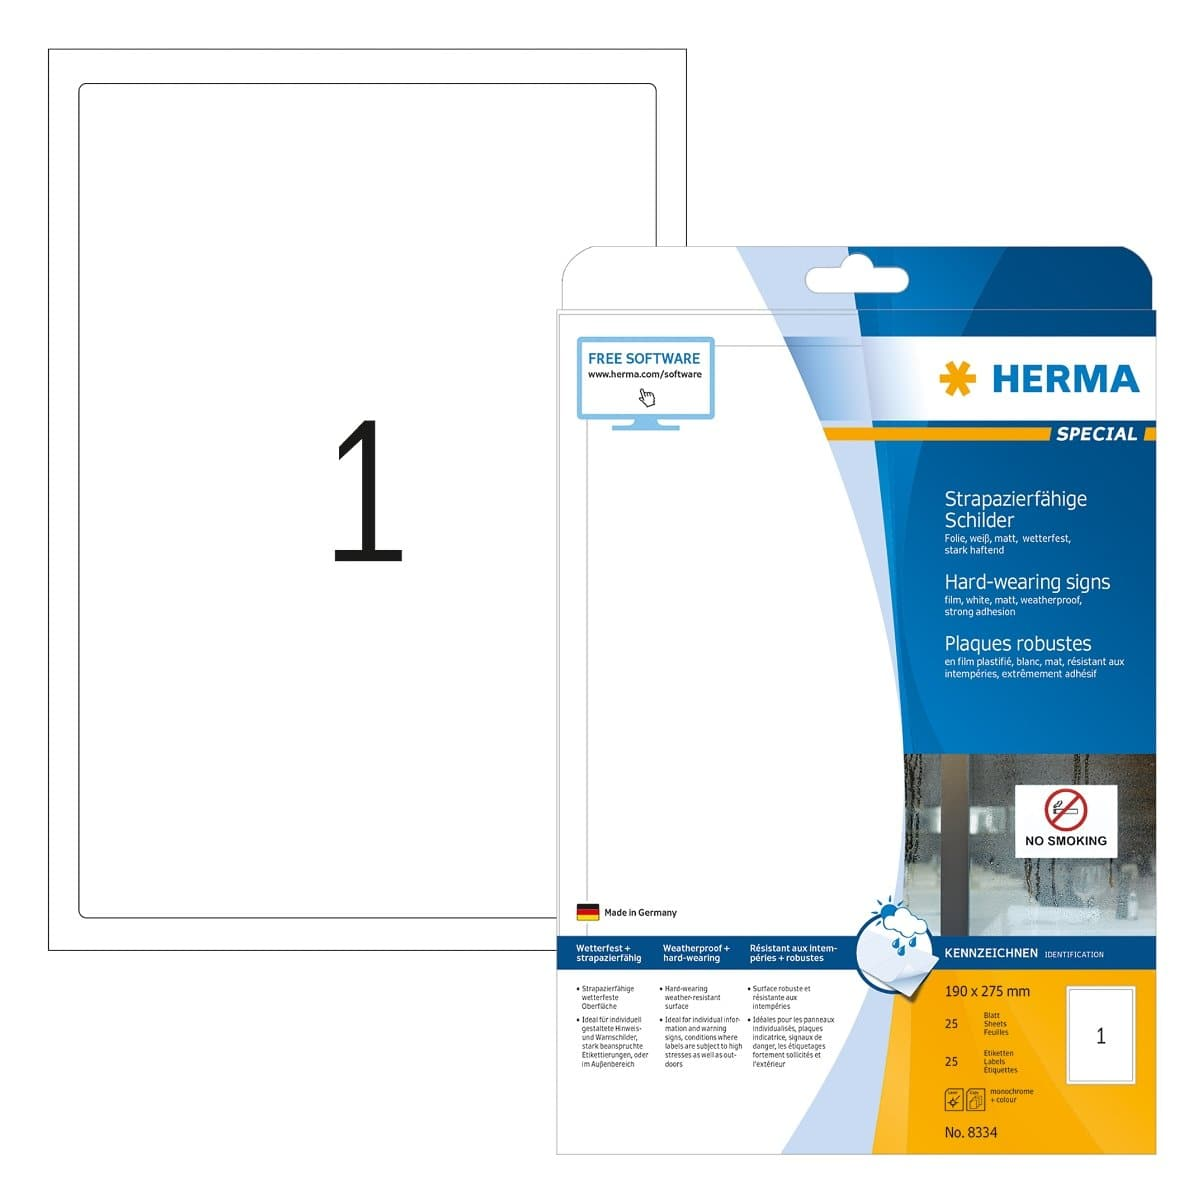 Herma Weatherproof Polyester Film, Hard-wearing Label, 190 x 275 mm, 25/pack, White